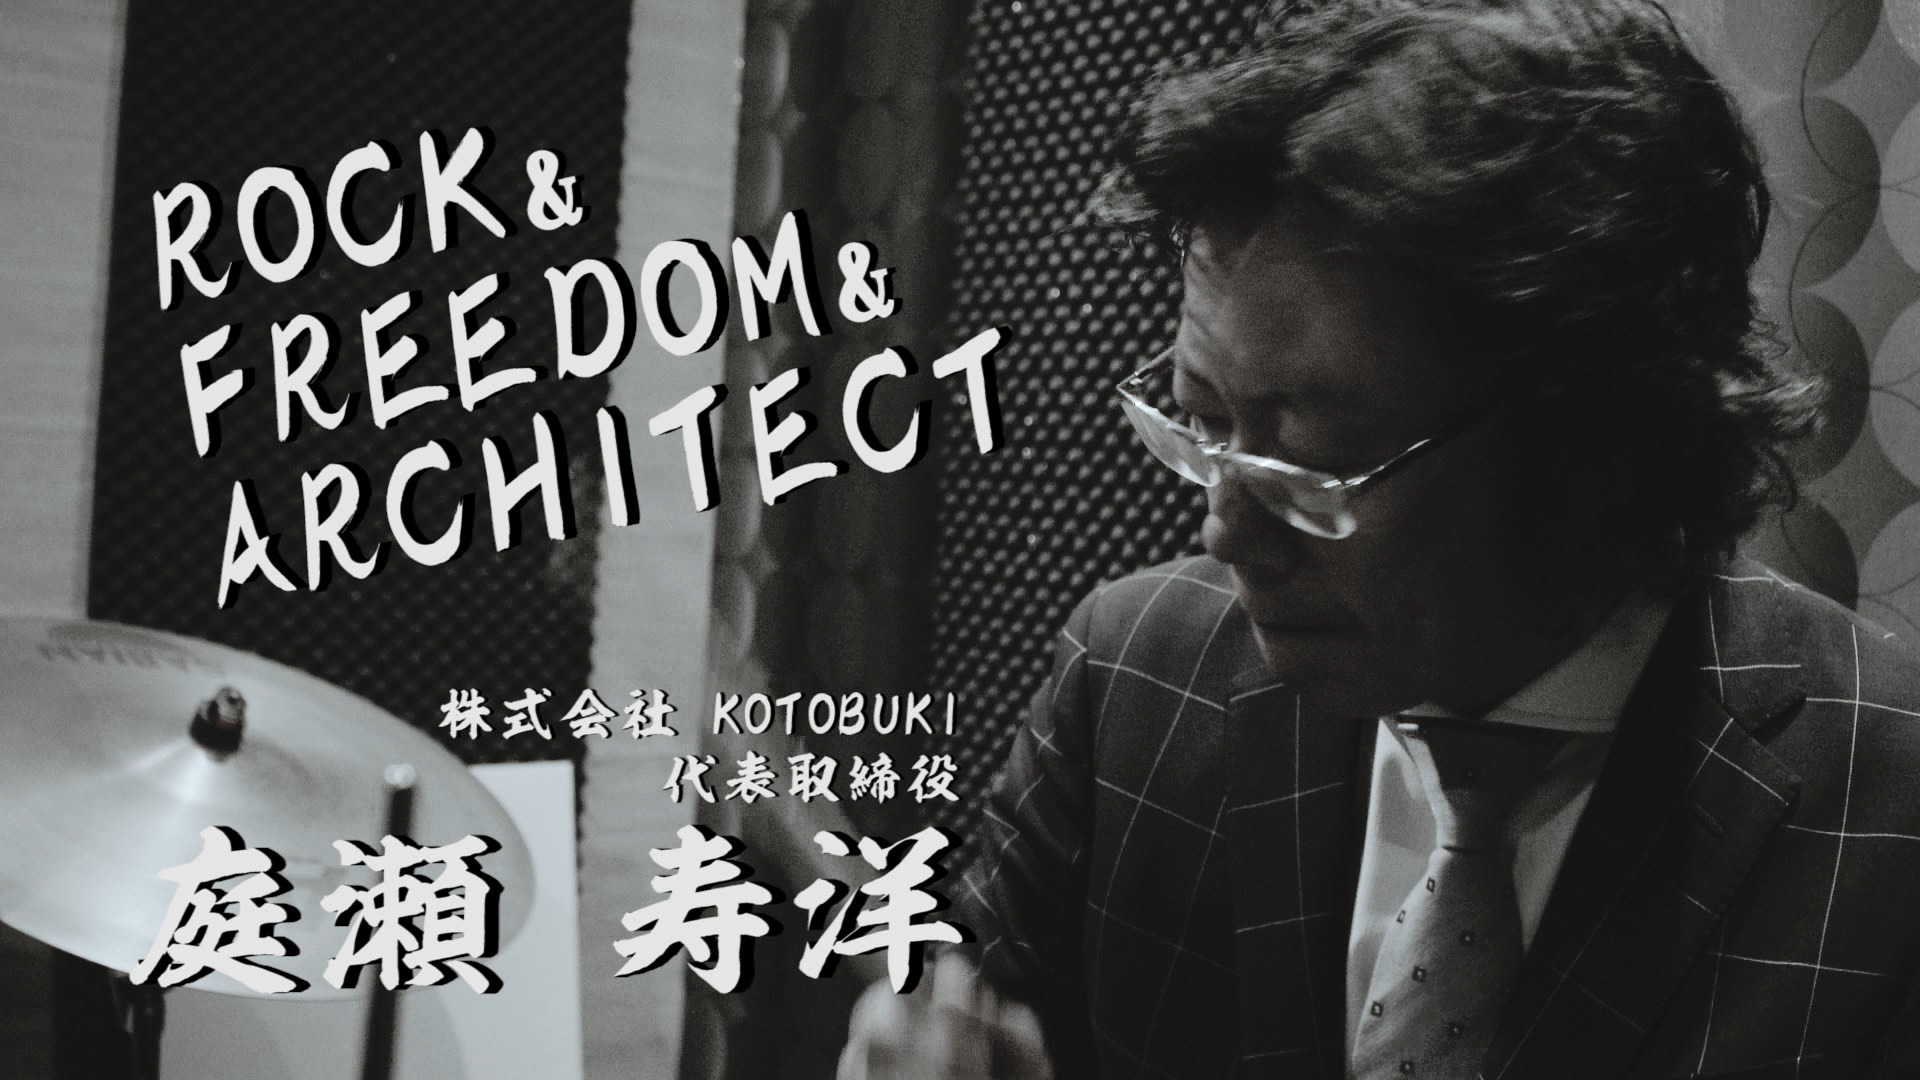 ROCK & FREEDOM & ARCHITECT